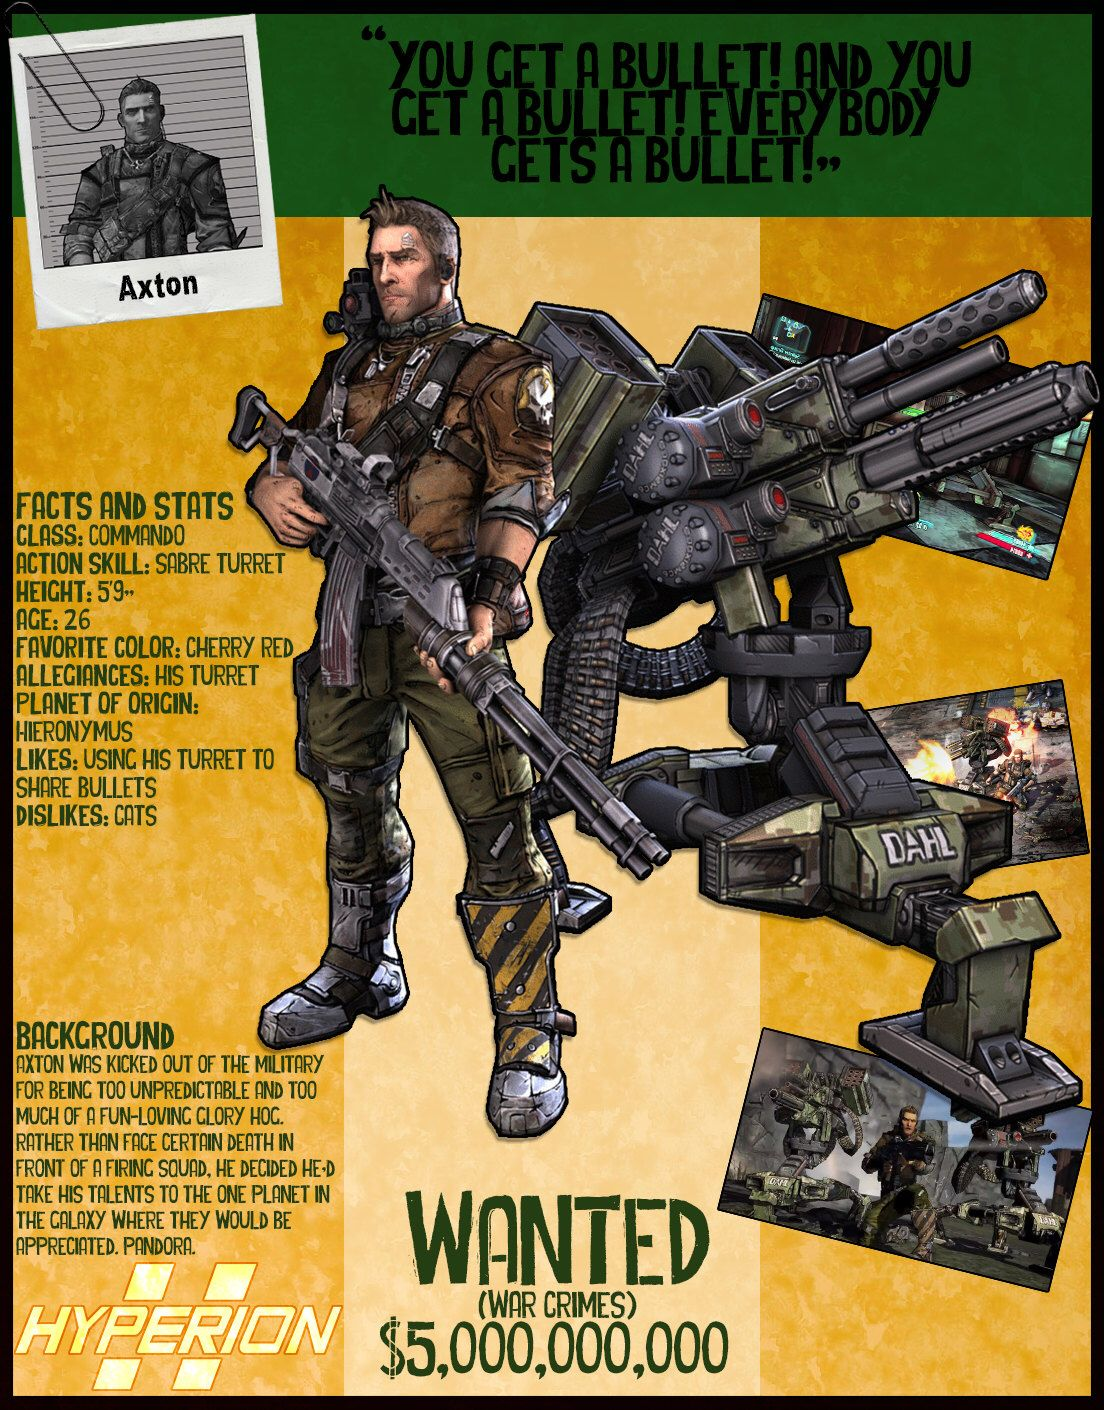 Borderlands 2 Wanted Posters - Axton by NerdscapeDesigns on Etsy https://www.etsy.com/listing/277811980/borderlands-2-wanted-posters-axton